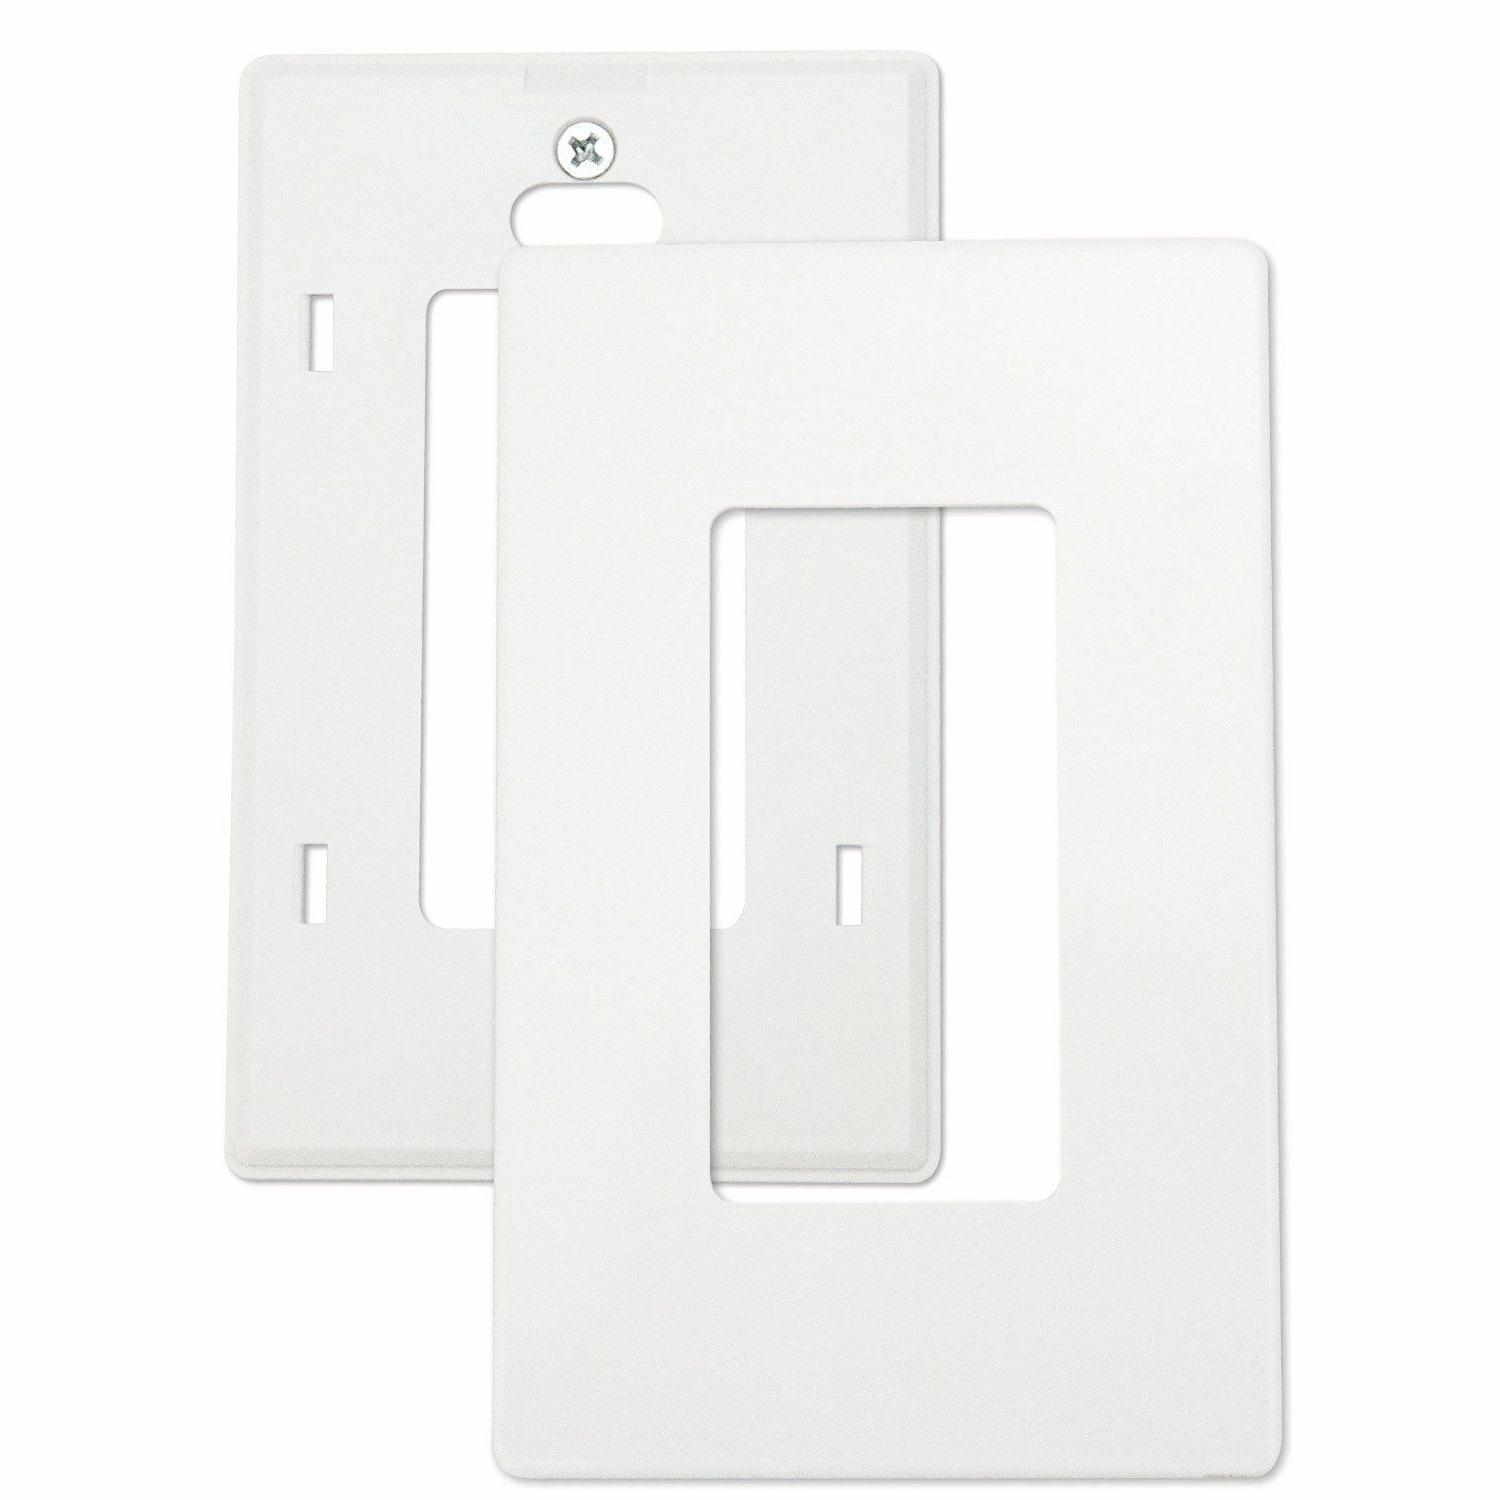 Screwless Rocker Wall Plate Outlet Covers GFCI Gang White